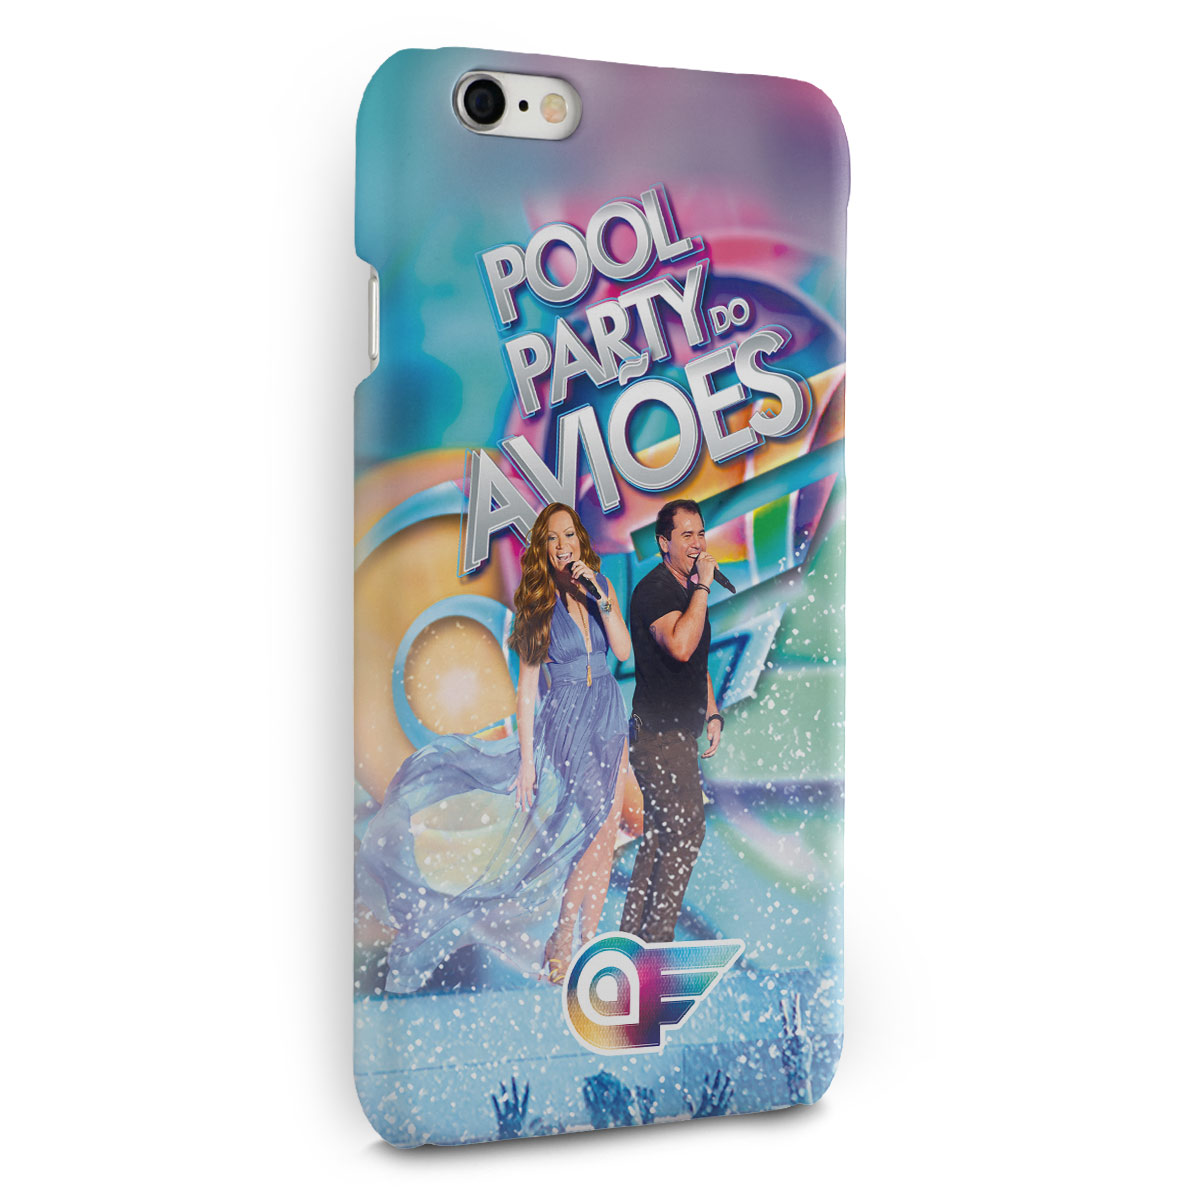 Capa para iPhone 6/6S Plus Aviões do Forró Capa Pool Party